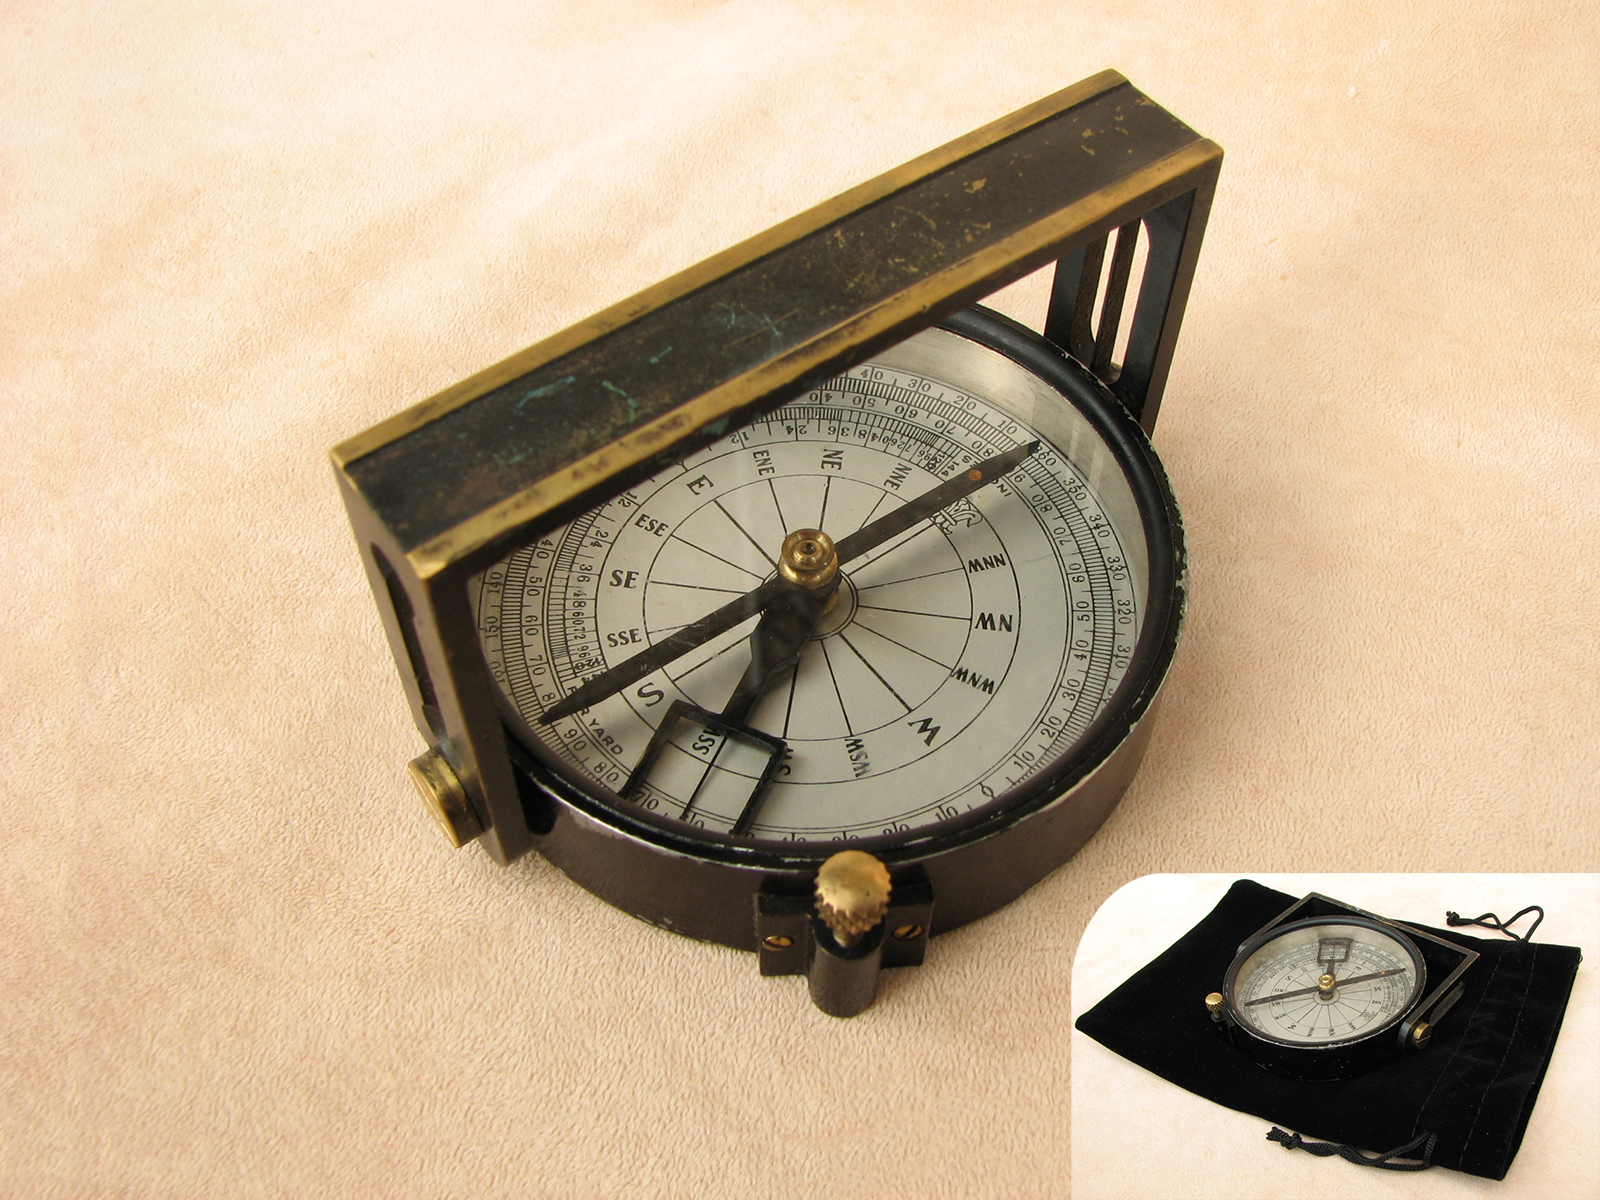 J H Steward Handle compass with clinometer